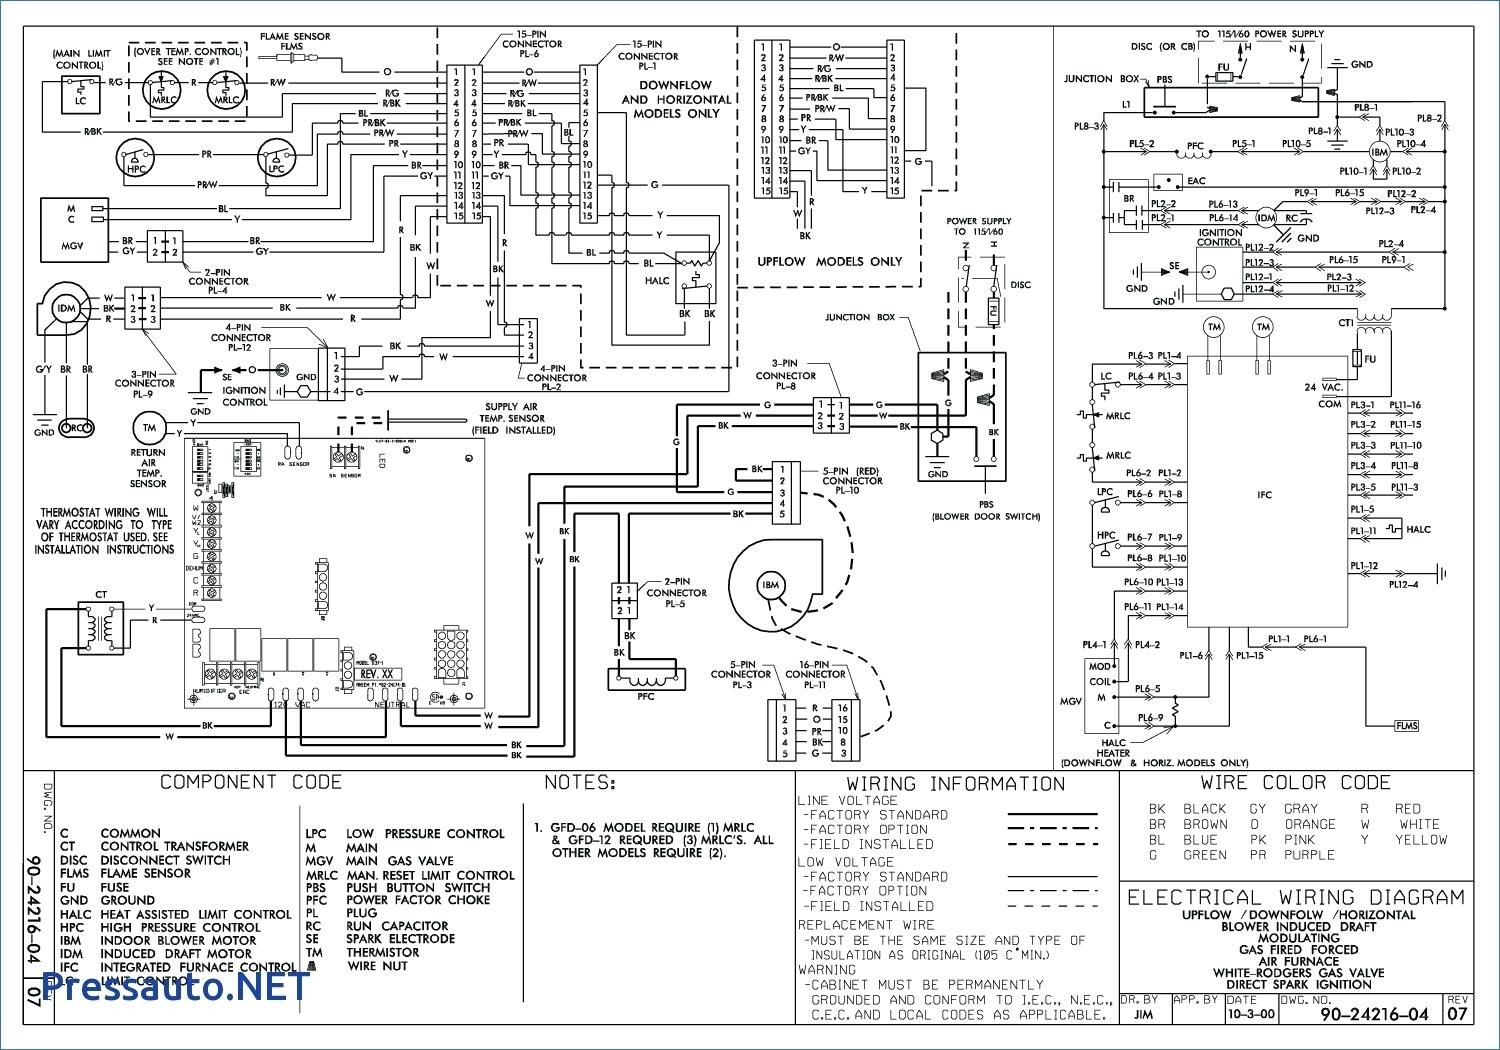 Home Air Conditioner Wiring Diagram Free Picture